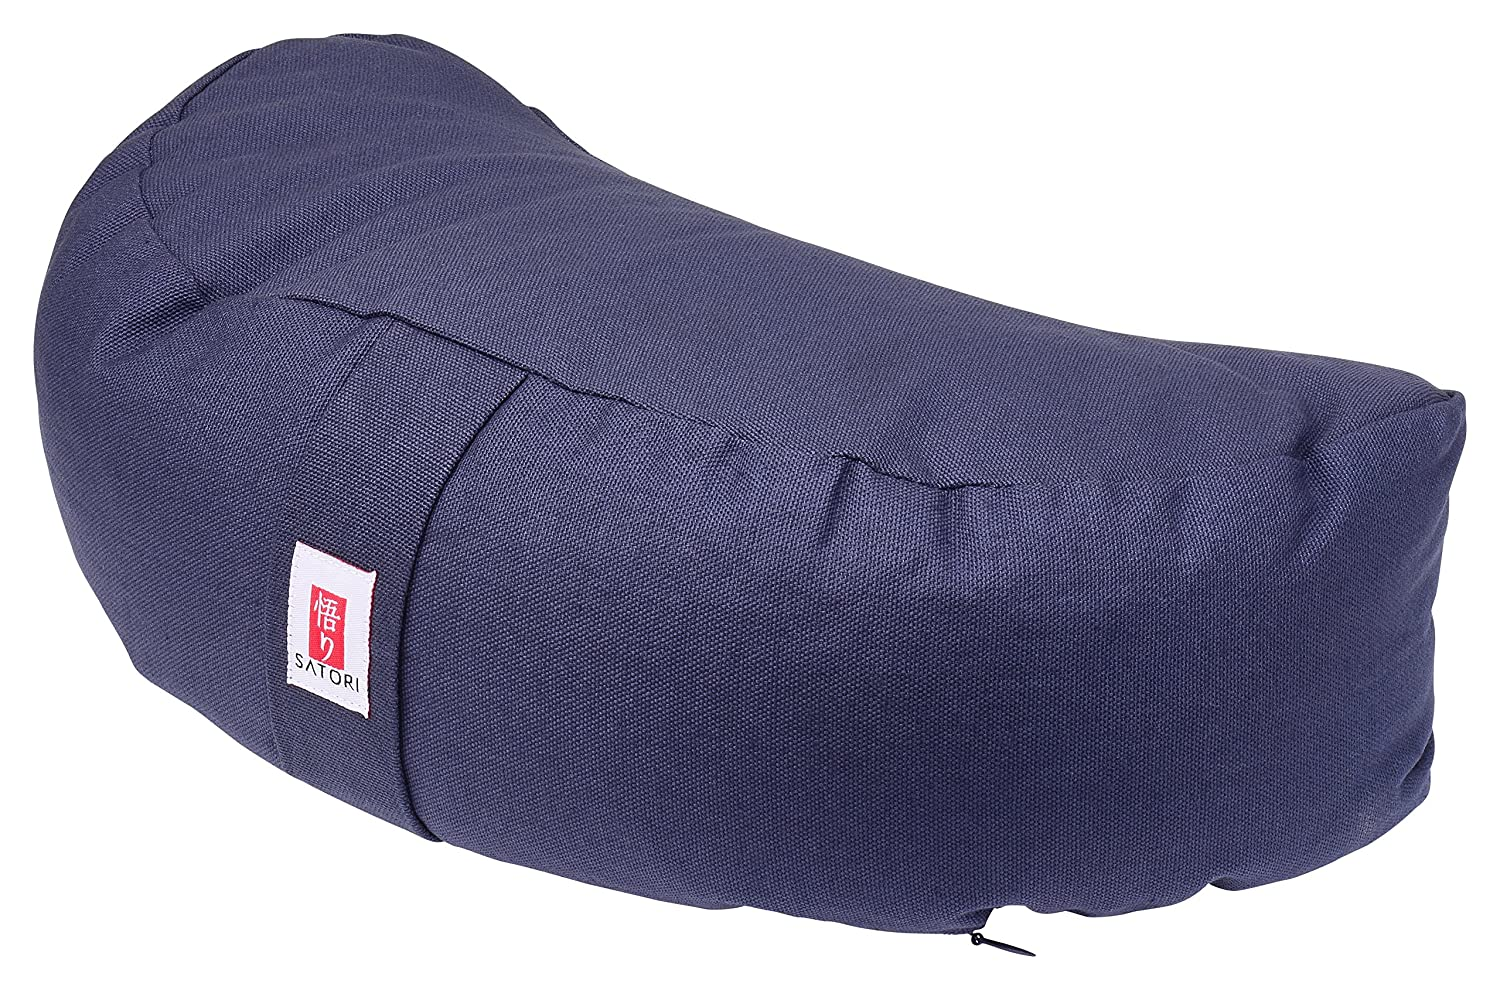 Top 5 Best Meditation Cushion Reviews in 2020 3